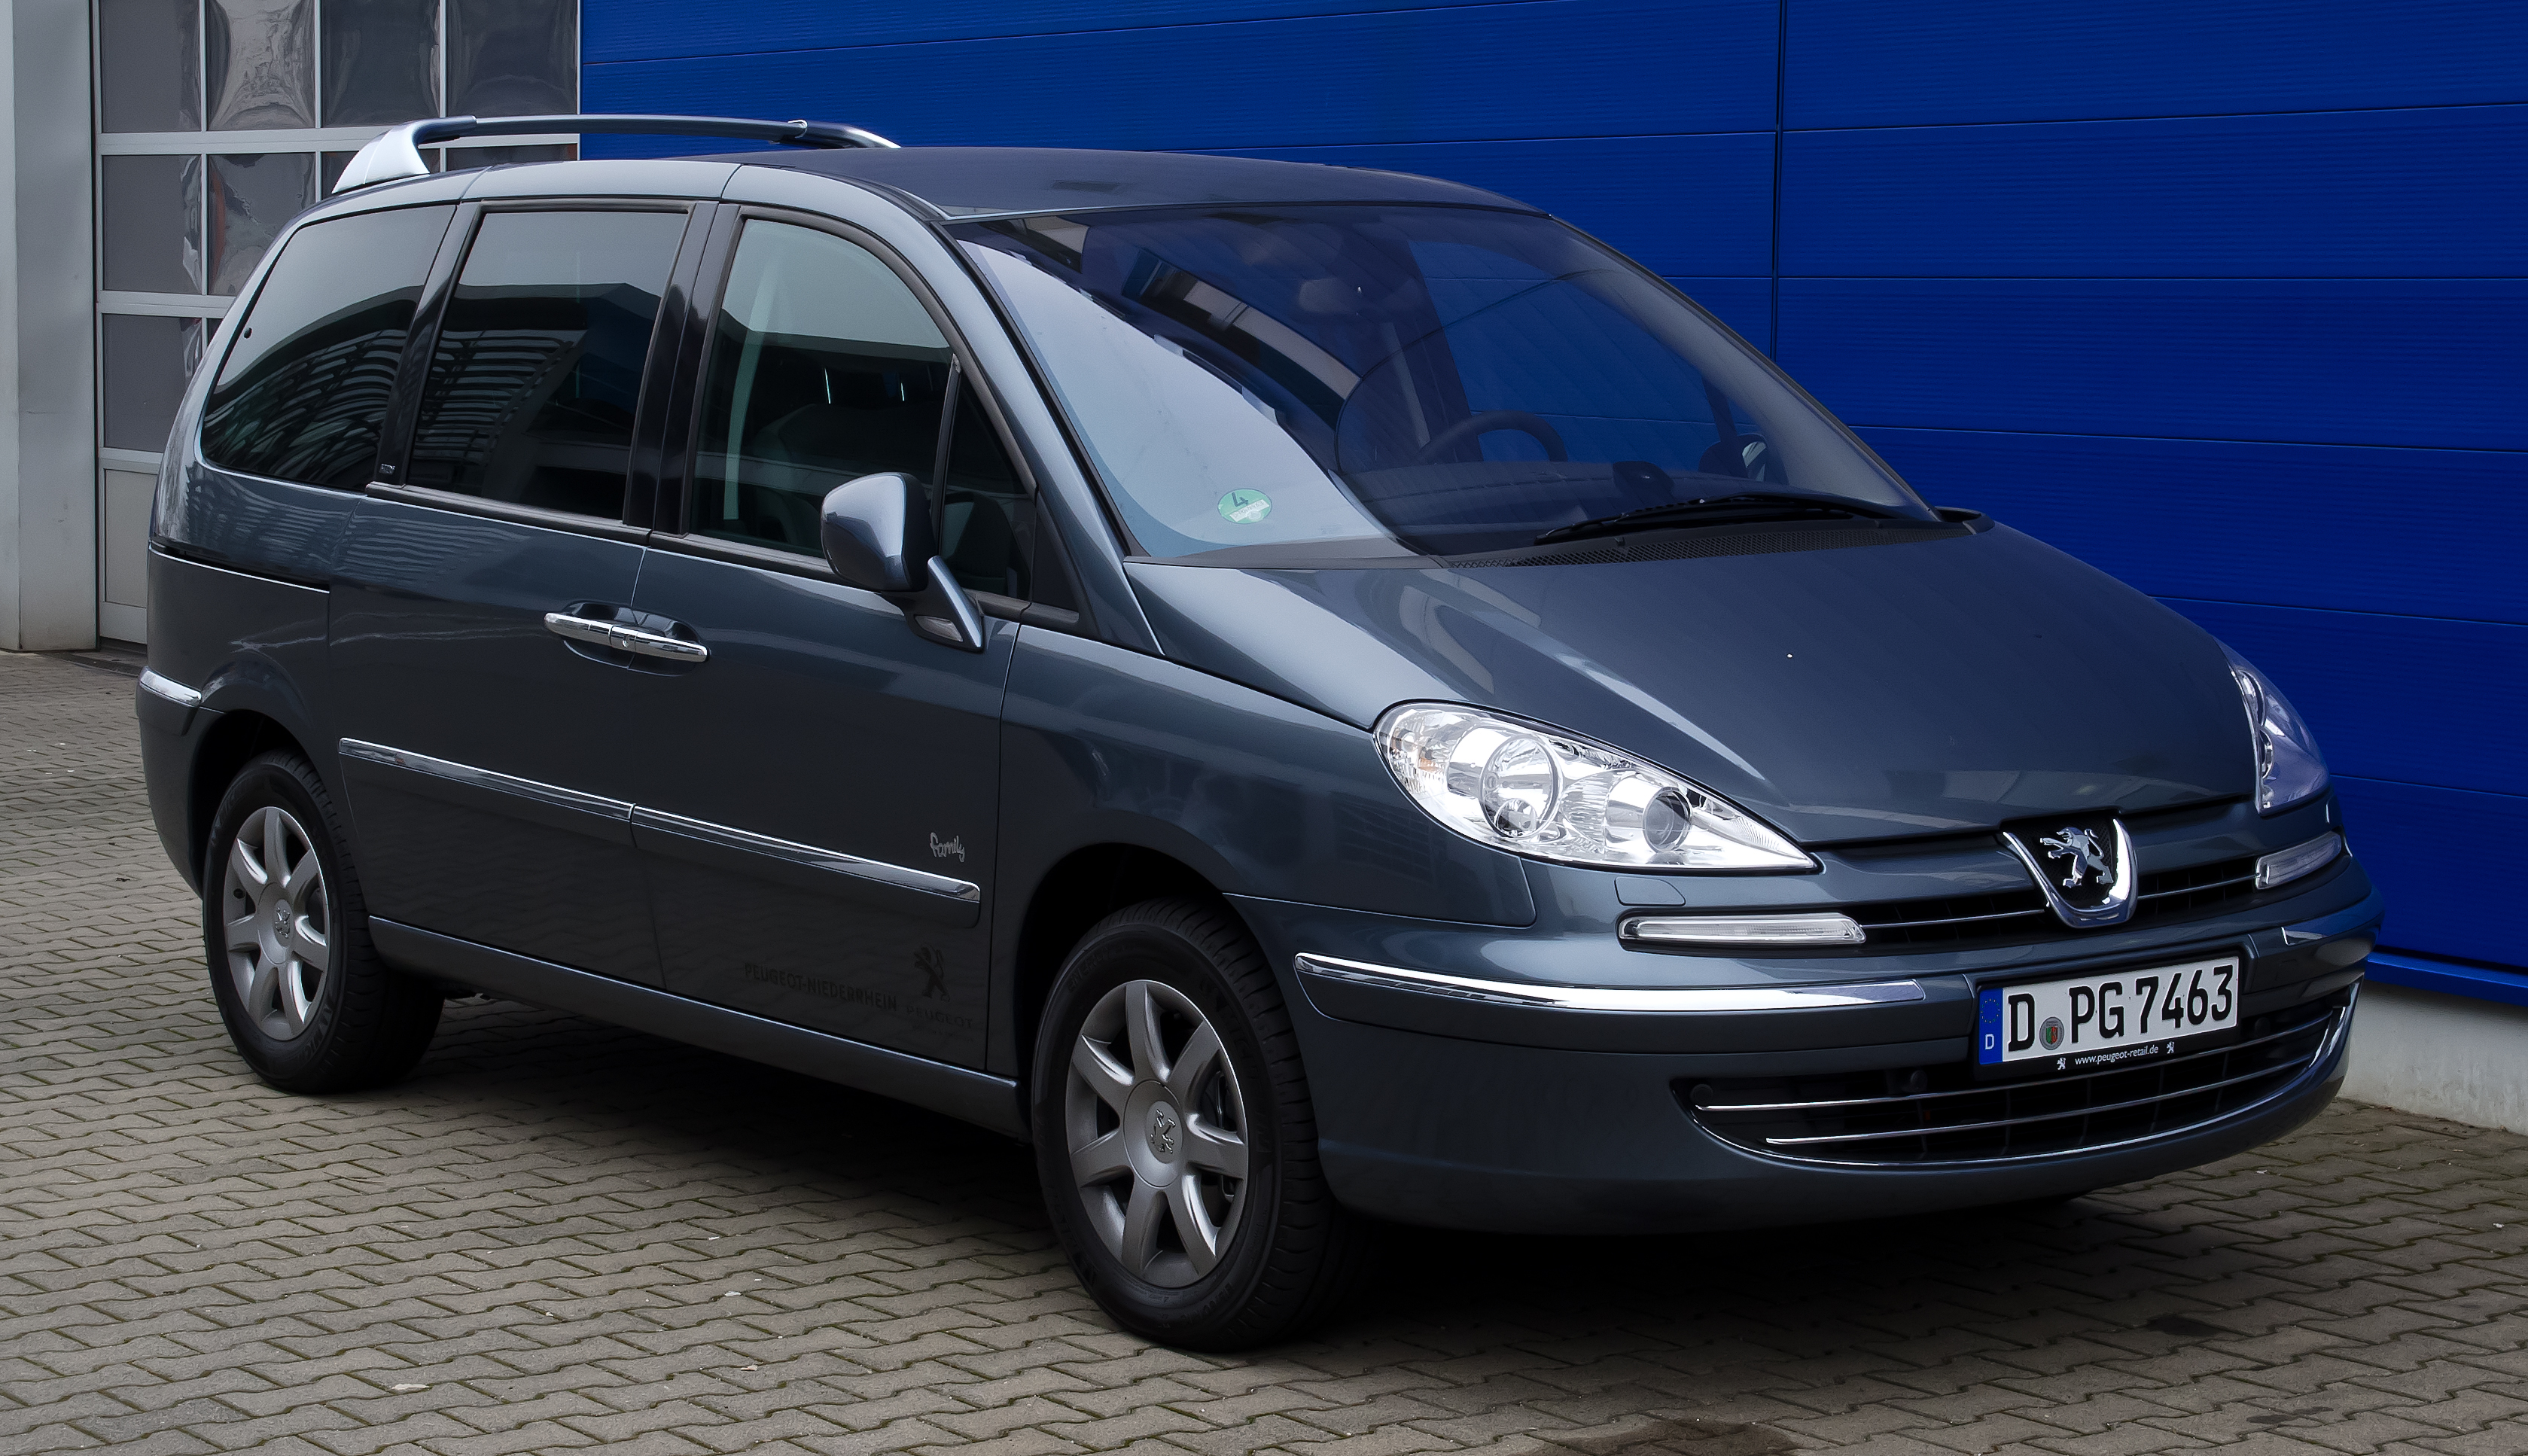 Pictures of peugeot 807 #1